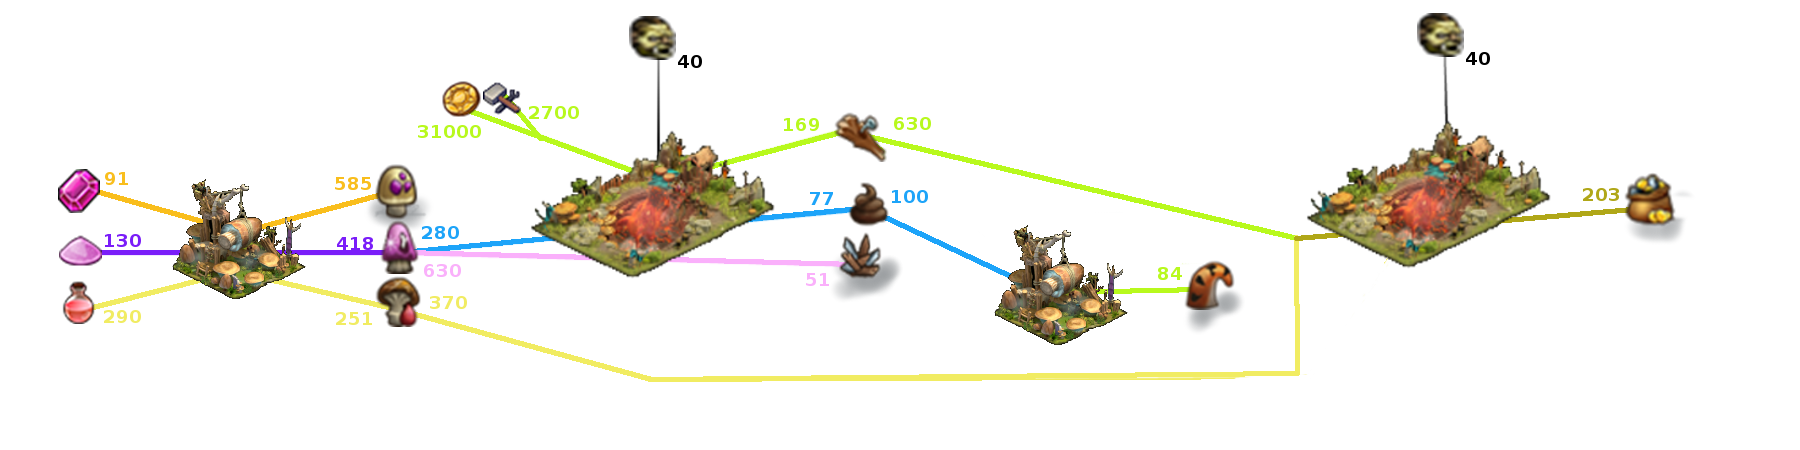 CycleOrcs.png